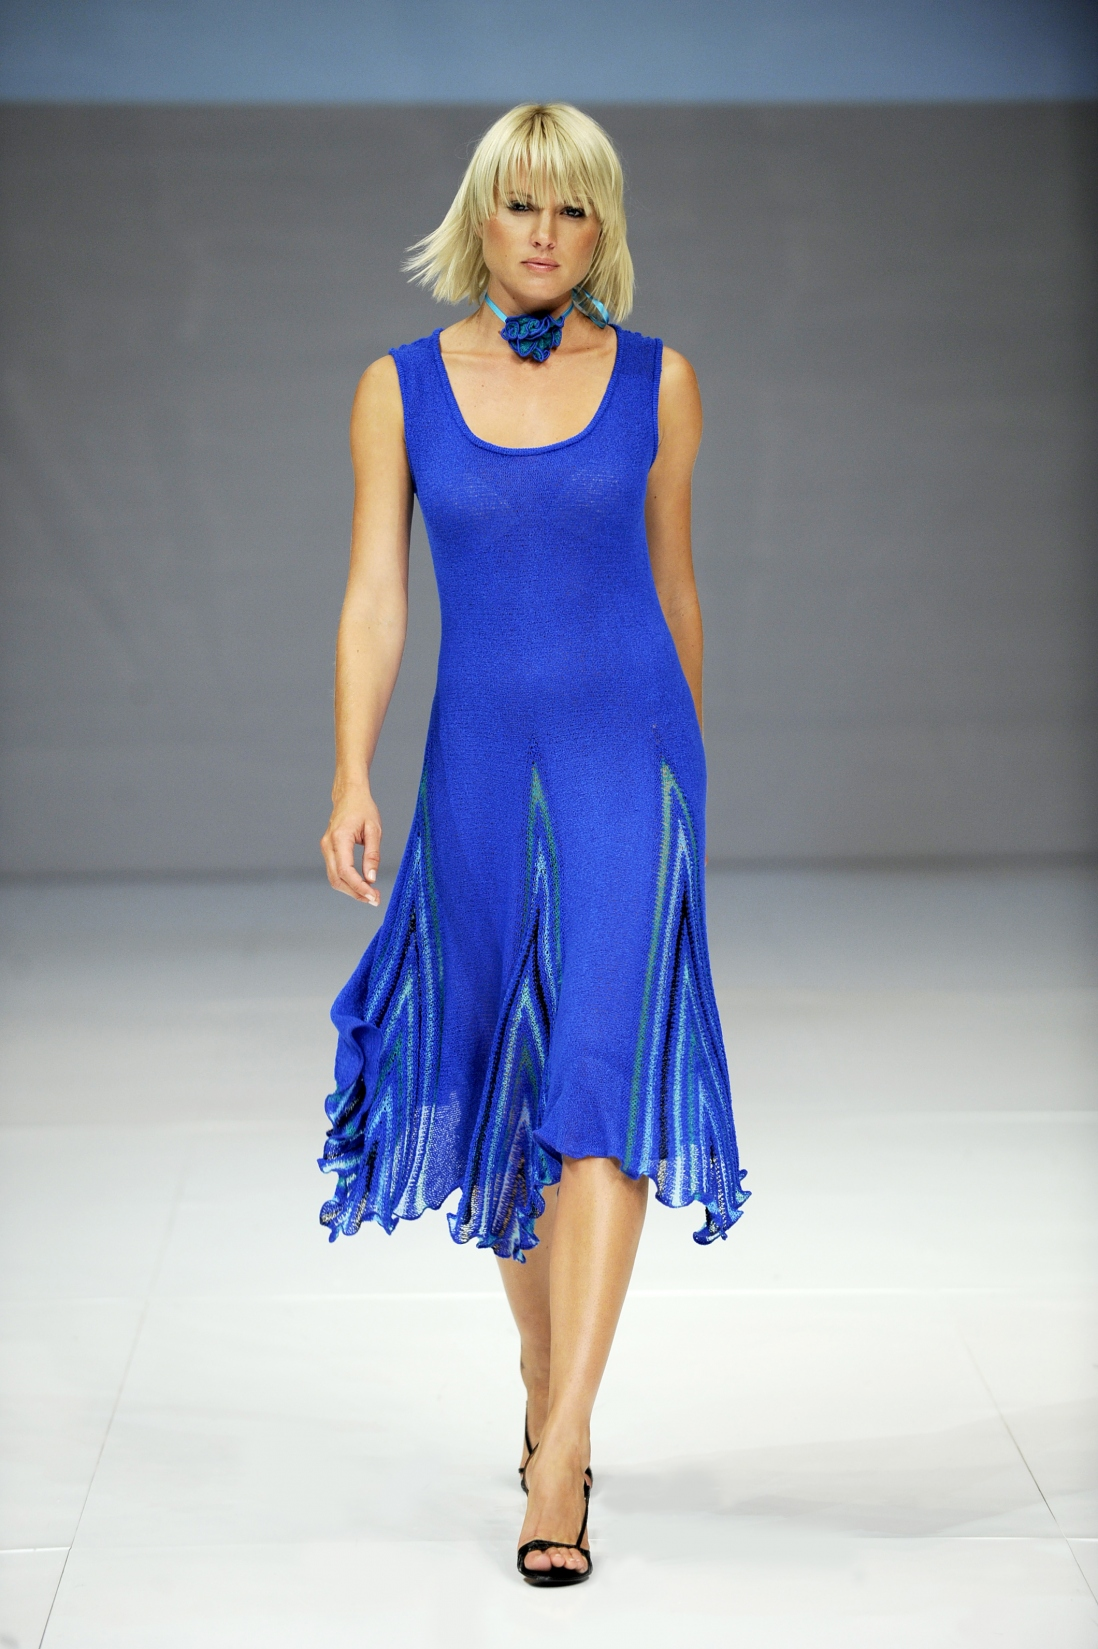 This is a photograph of a model walking down a catwalk in a bright blue soft woven dress